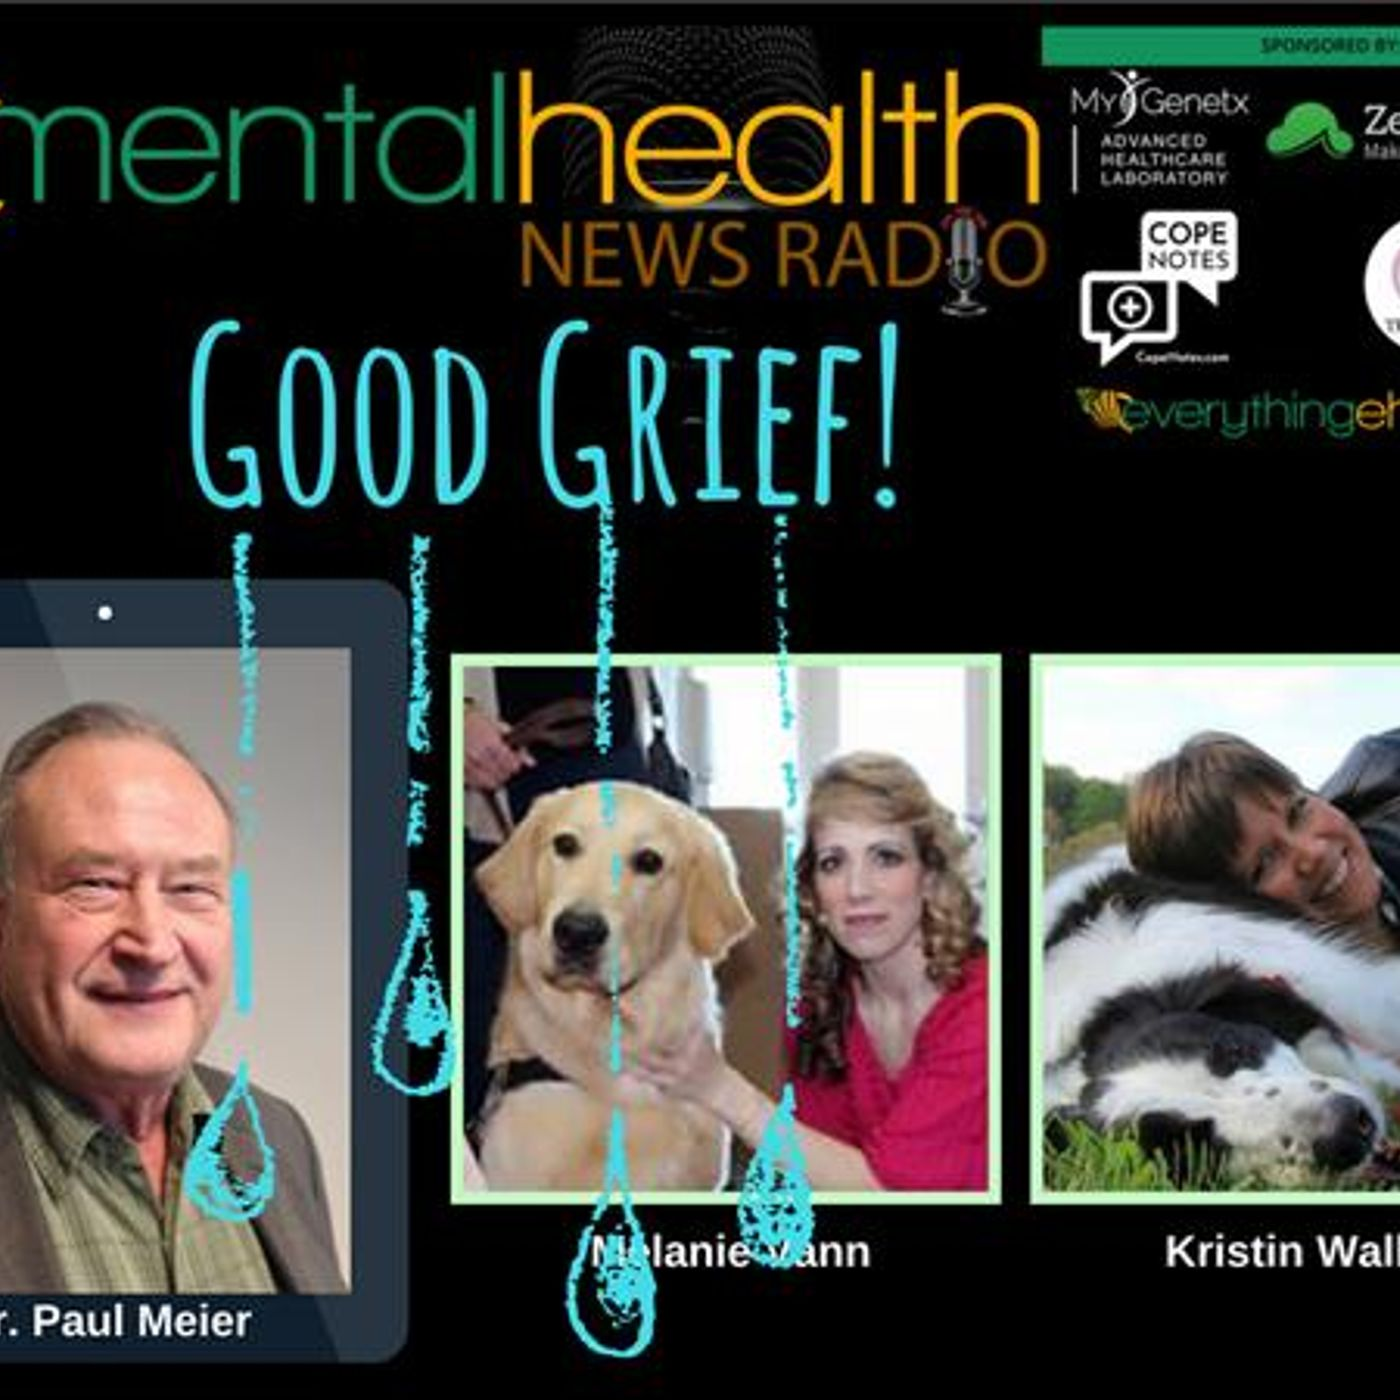 Mental Health News Radio - Round Table Discussions with Dr. Paul Meier: Good Grief